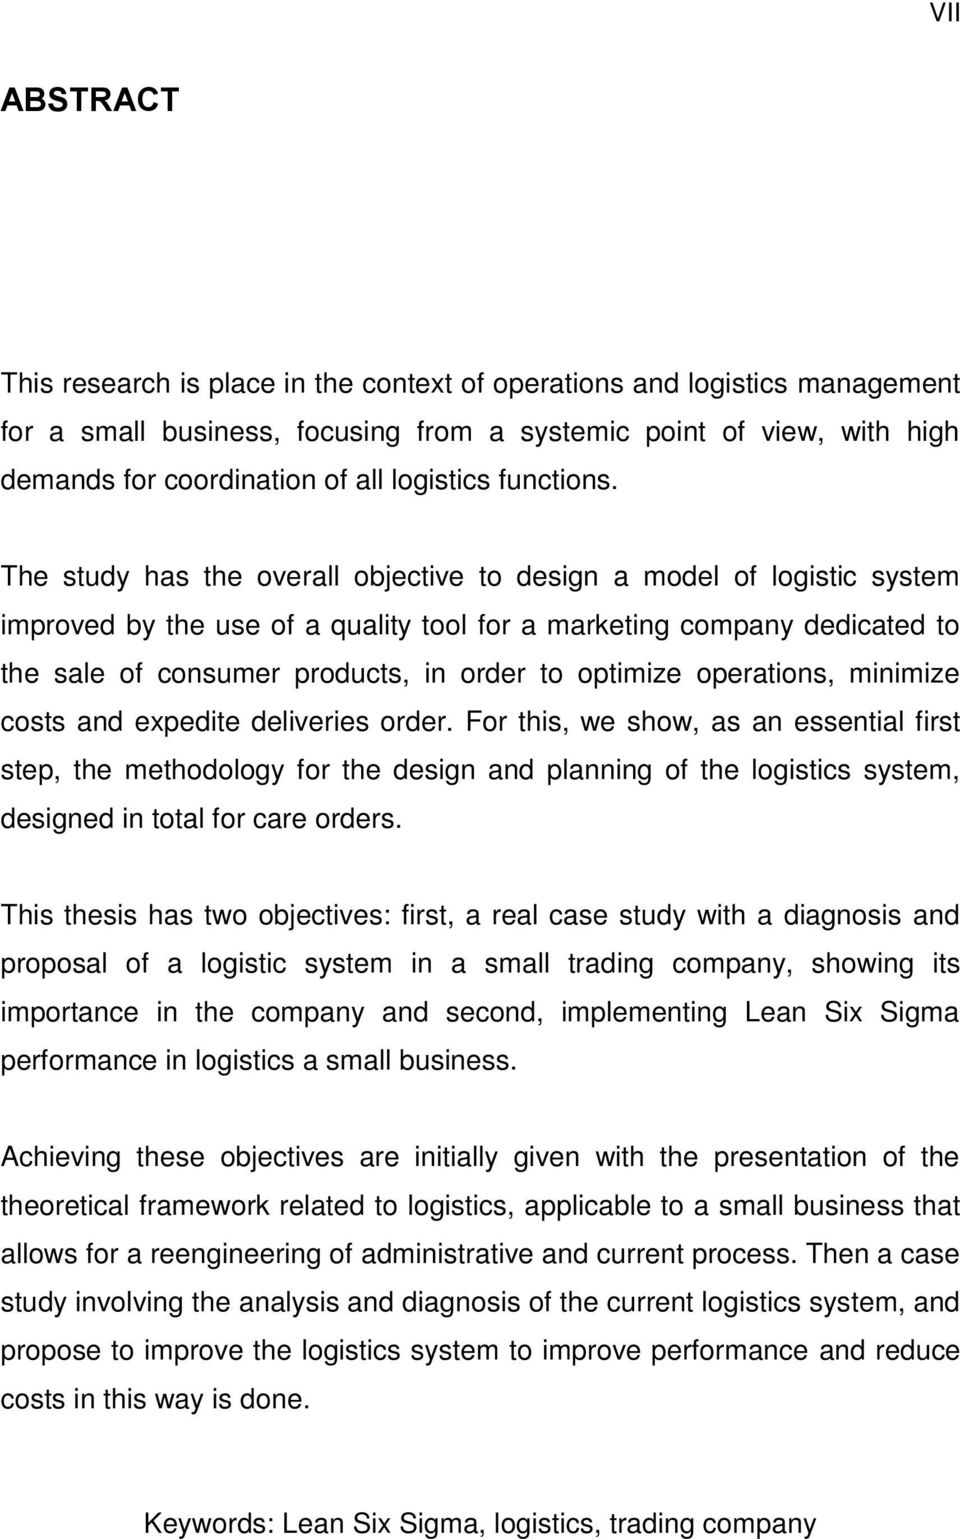 The study has the overall objective to design a model of logistic system improved by the use of a quality tool for a marketing company dedicated to the sale of consumer products, in order to optimize